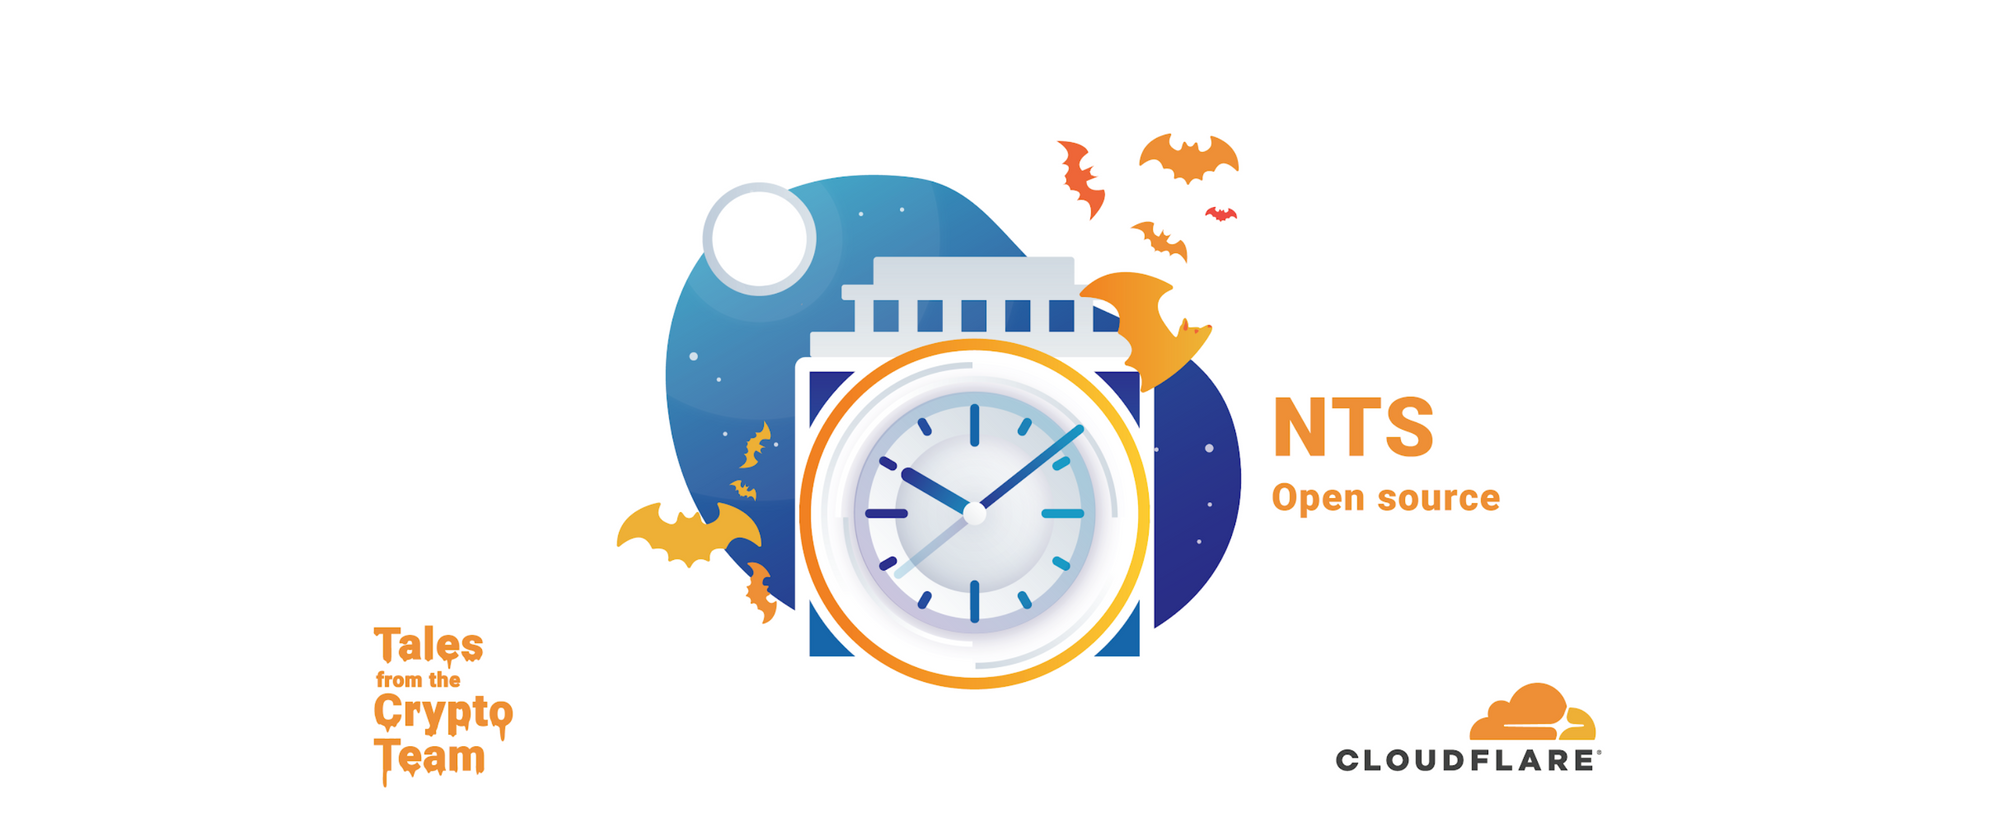 Announcing cfnts: Cloudflare's implementation of NTS in Rust